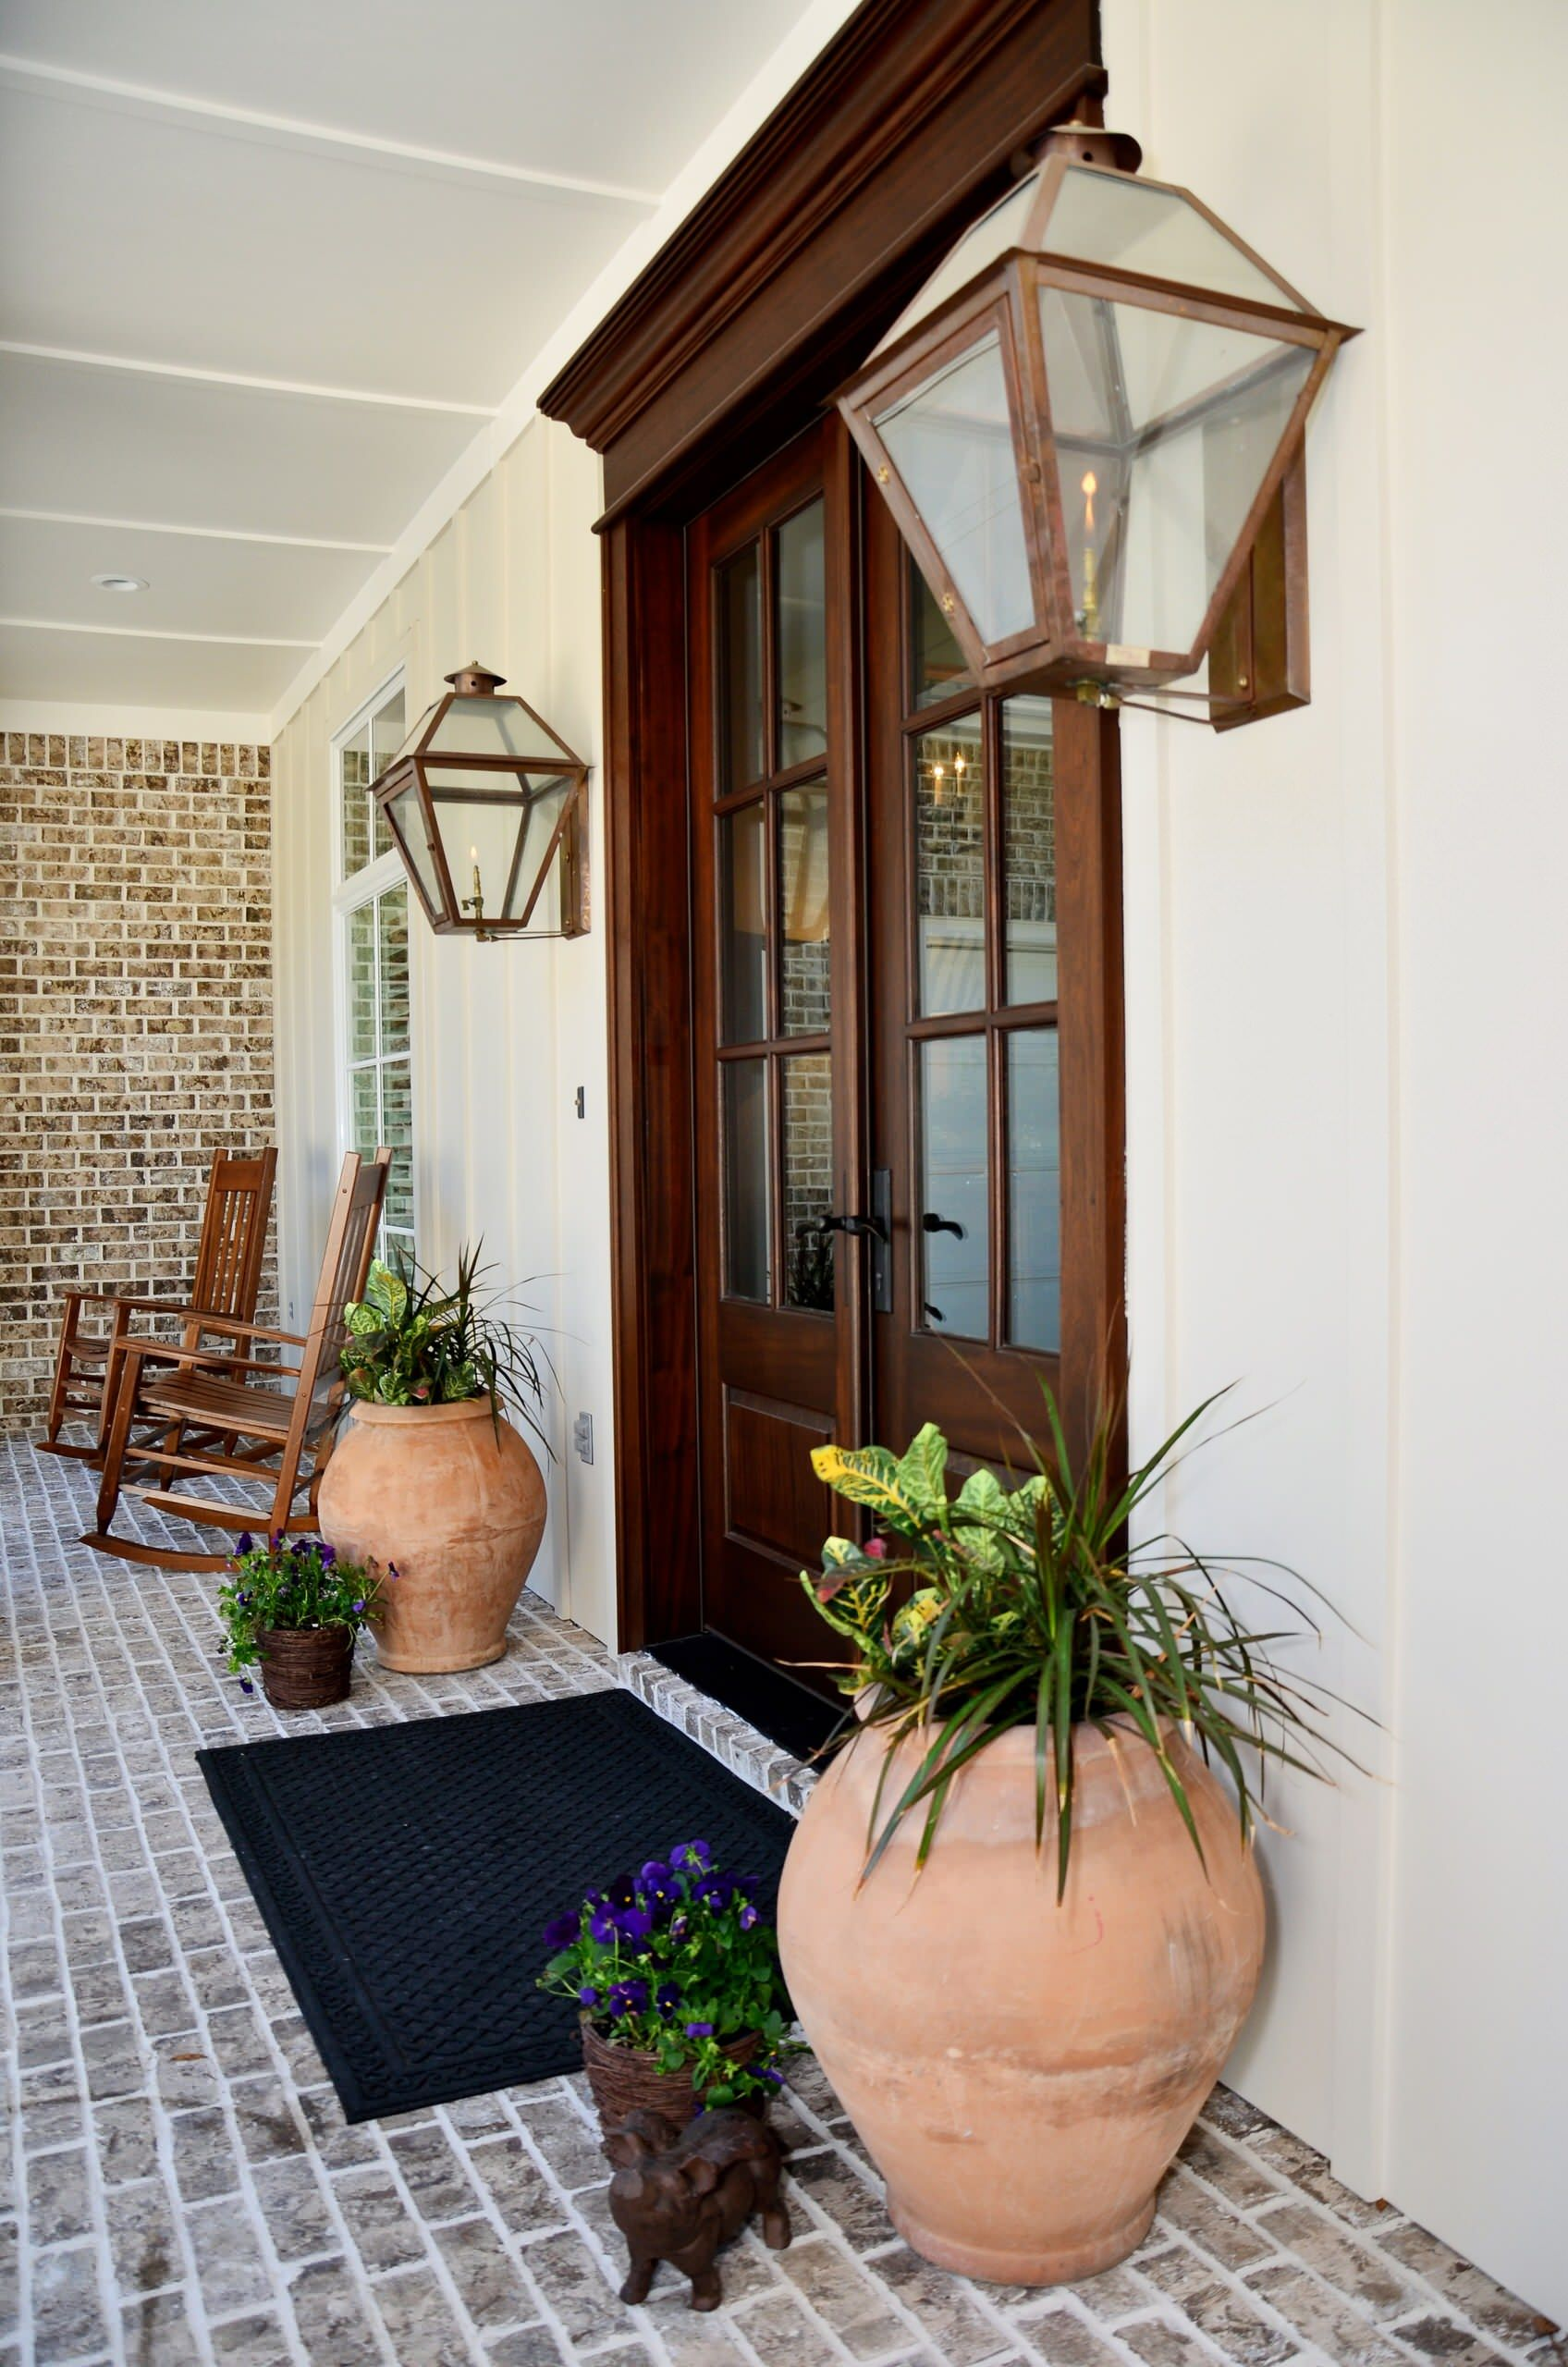 Bestes hausfrontdesign  great entryways for your home  Декор дизайн  pinterest